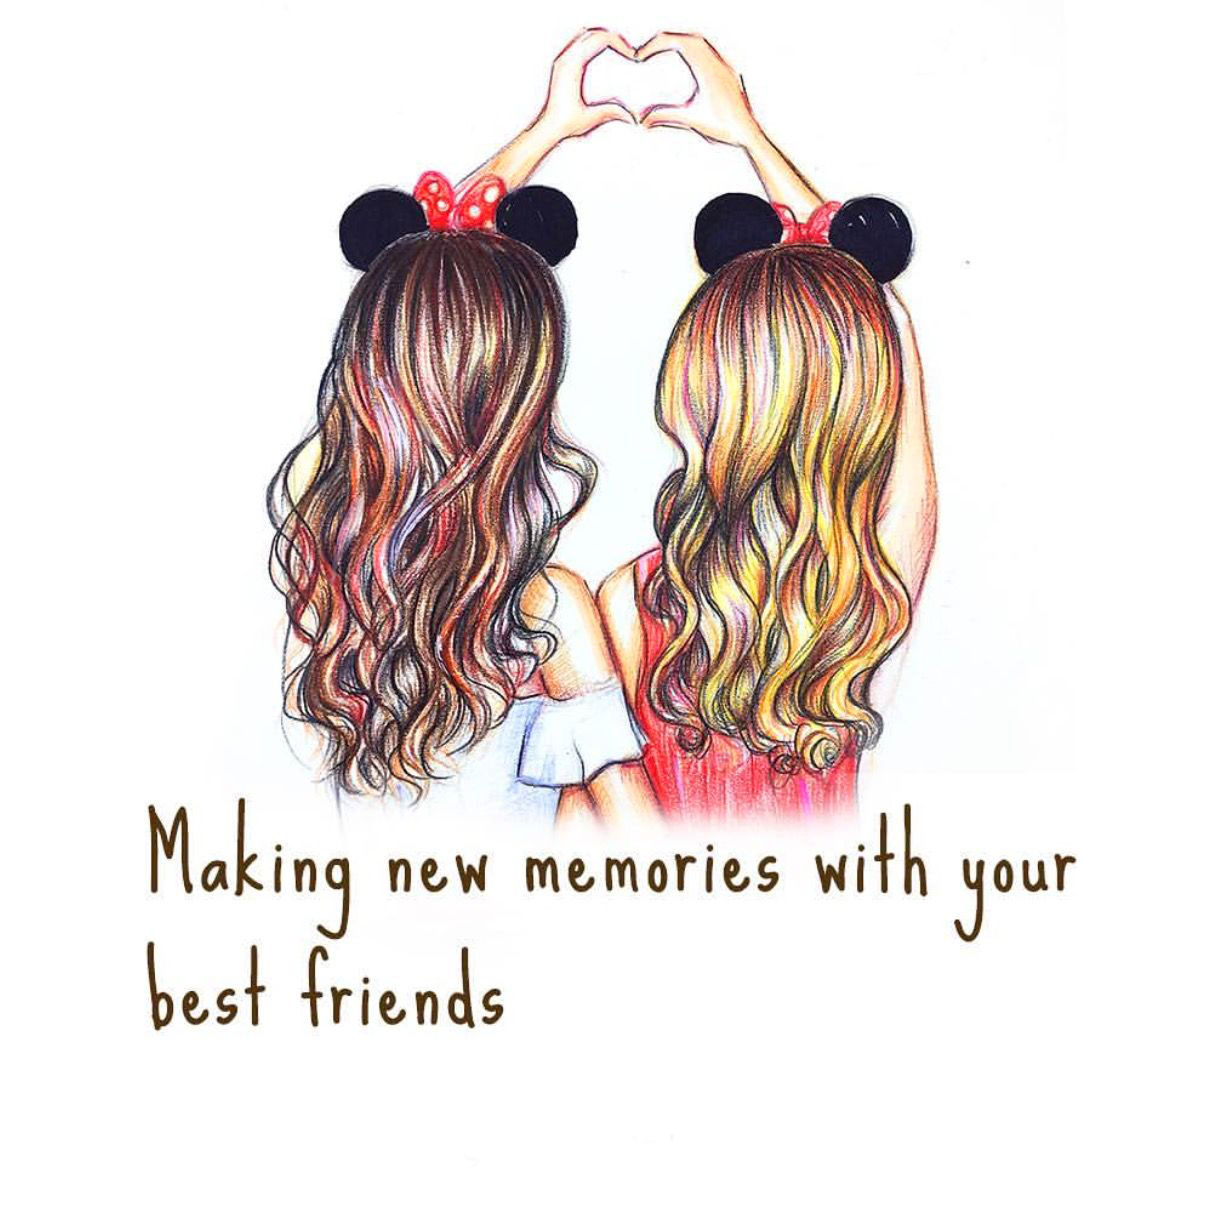 Friend Forever Images photo for download